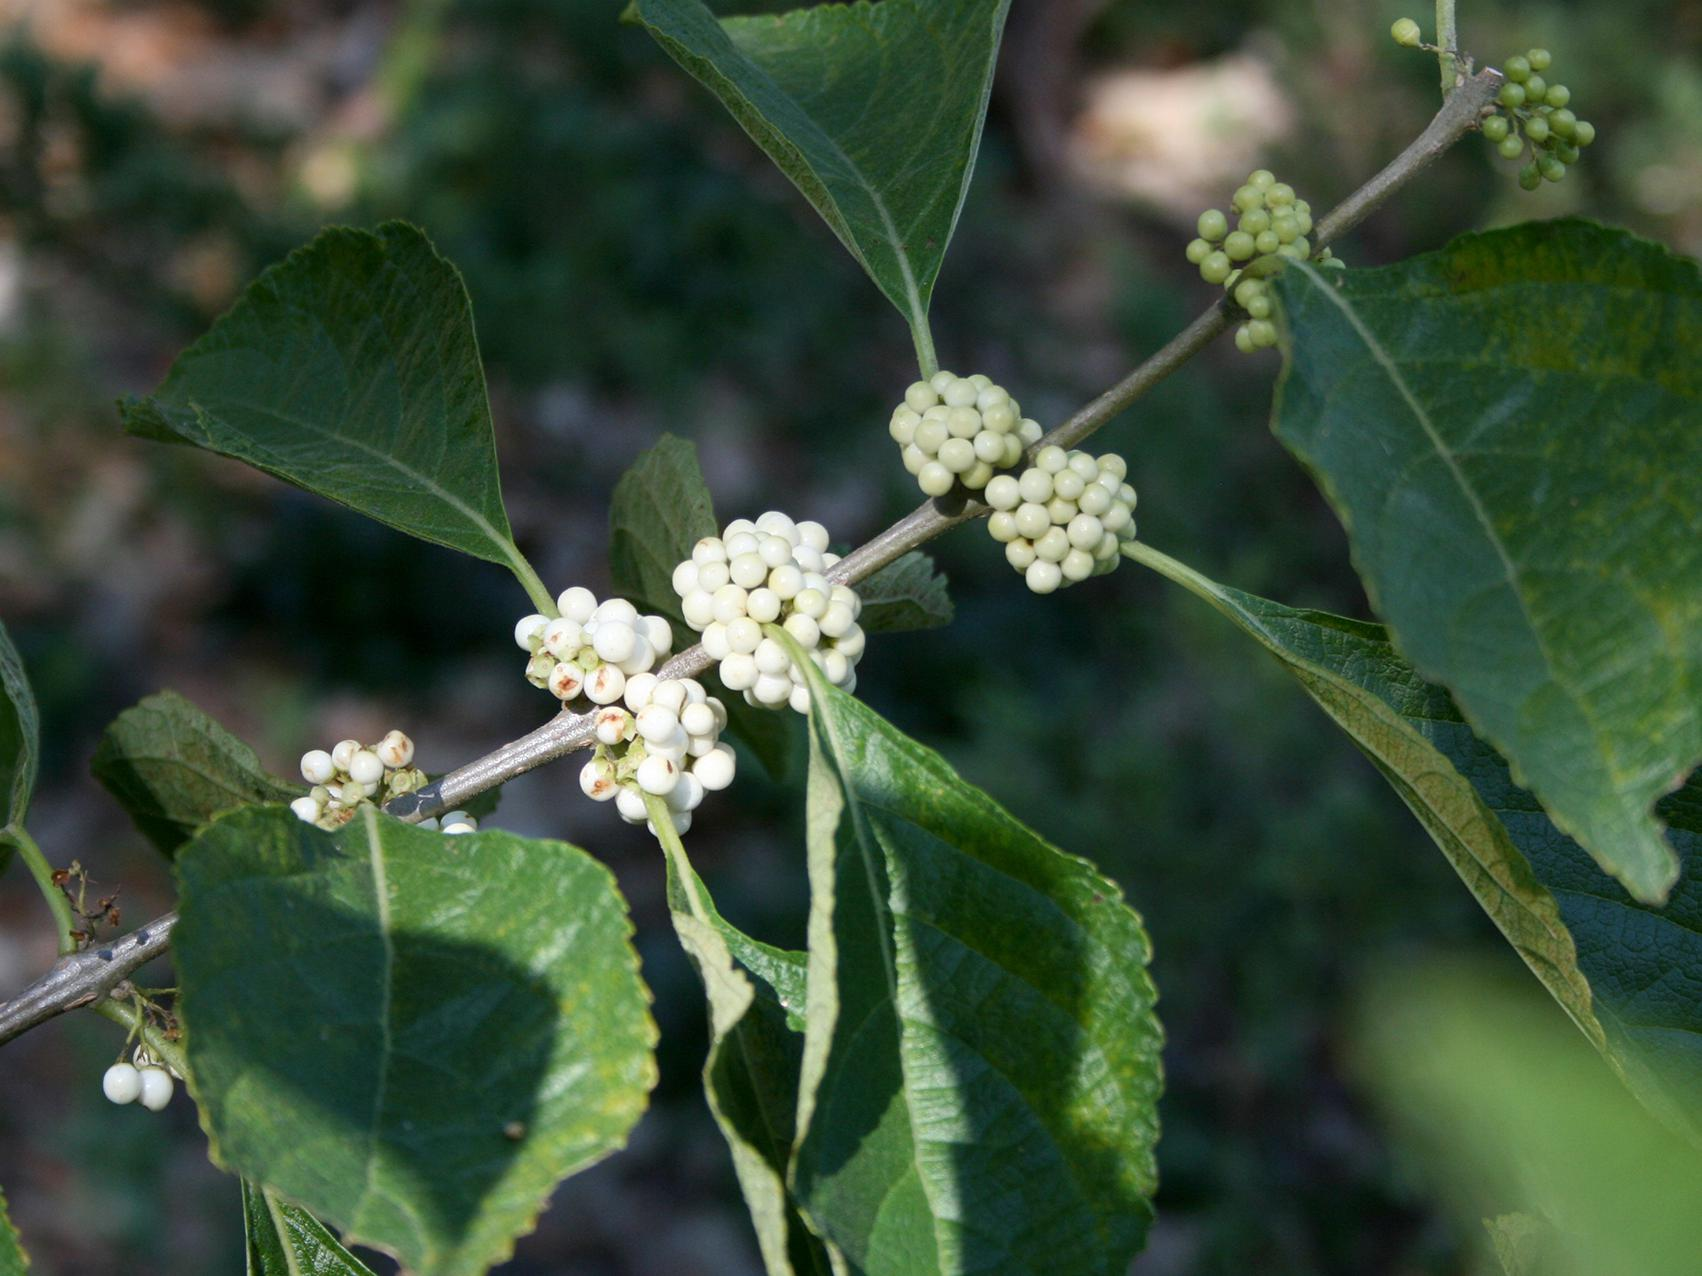 A single branch has bunches of white berries growing at each leaf junction.